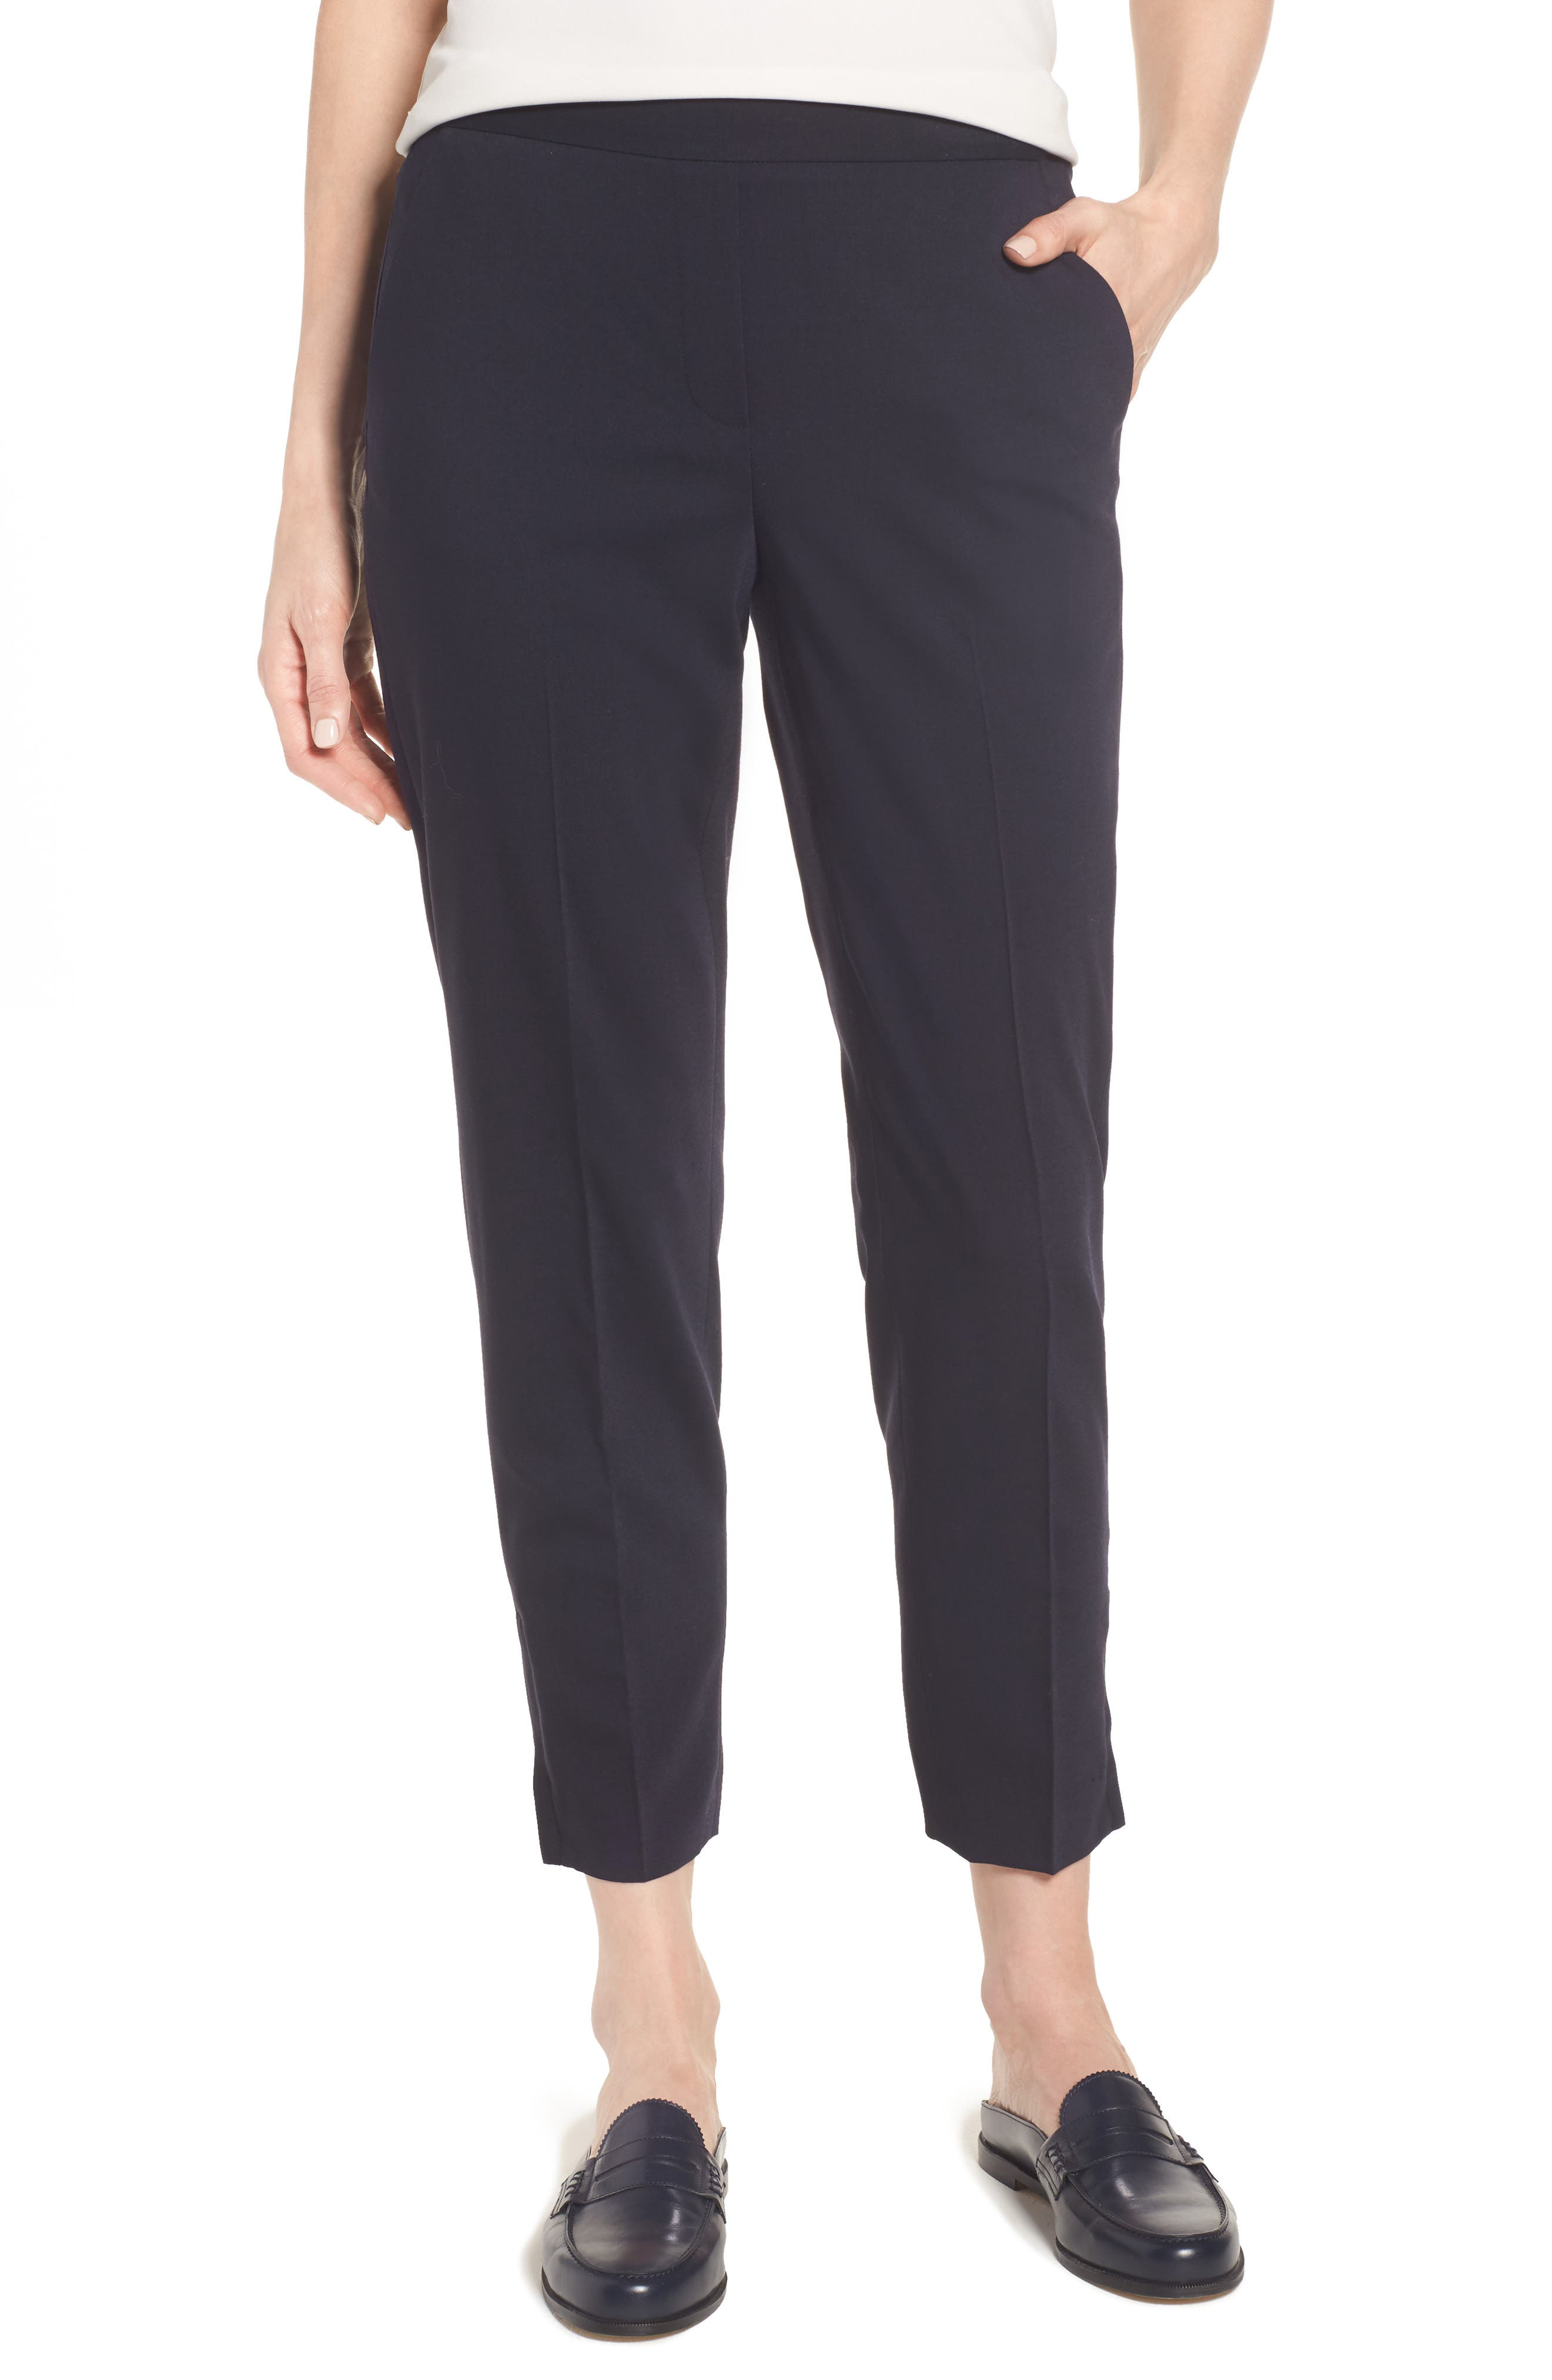 Alternate Image 1 Selected - Nordstrom Signature Stretch Ankle Pants